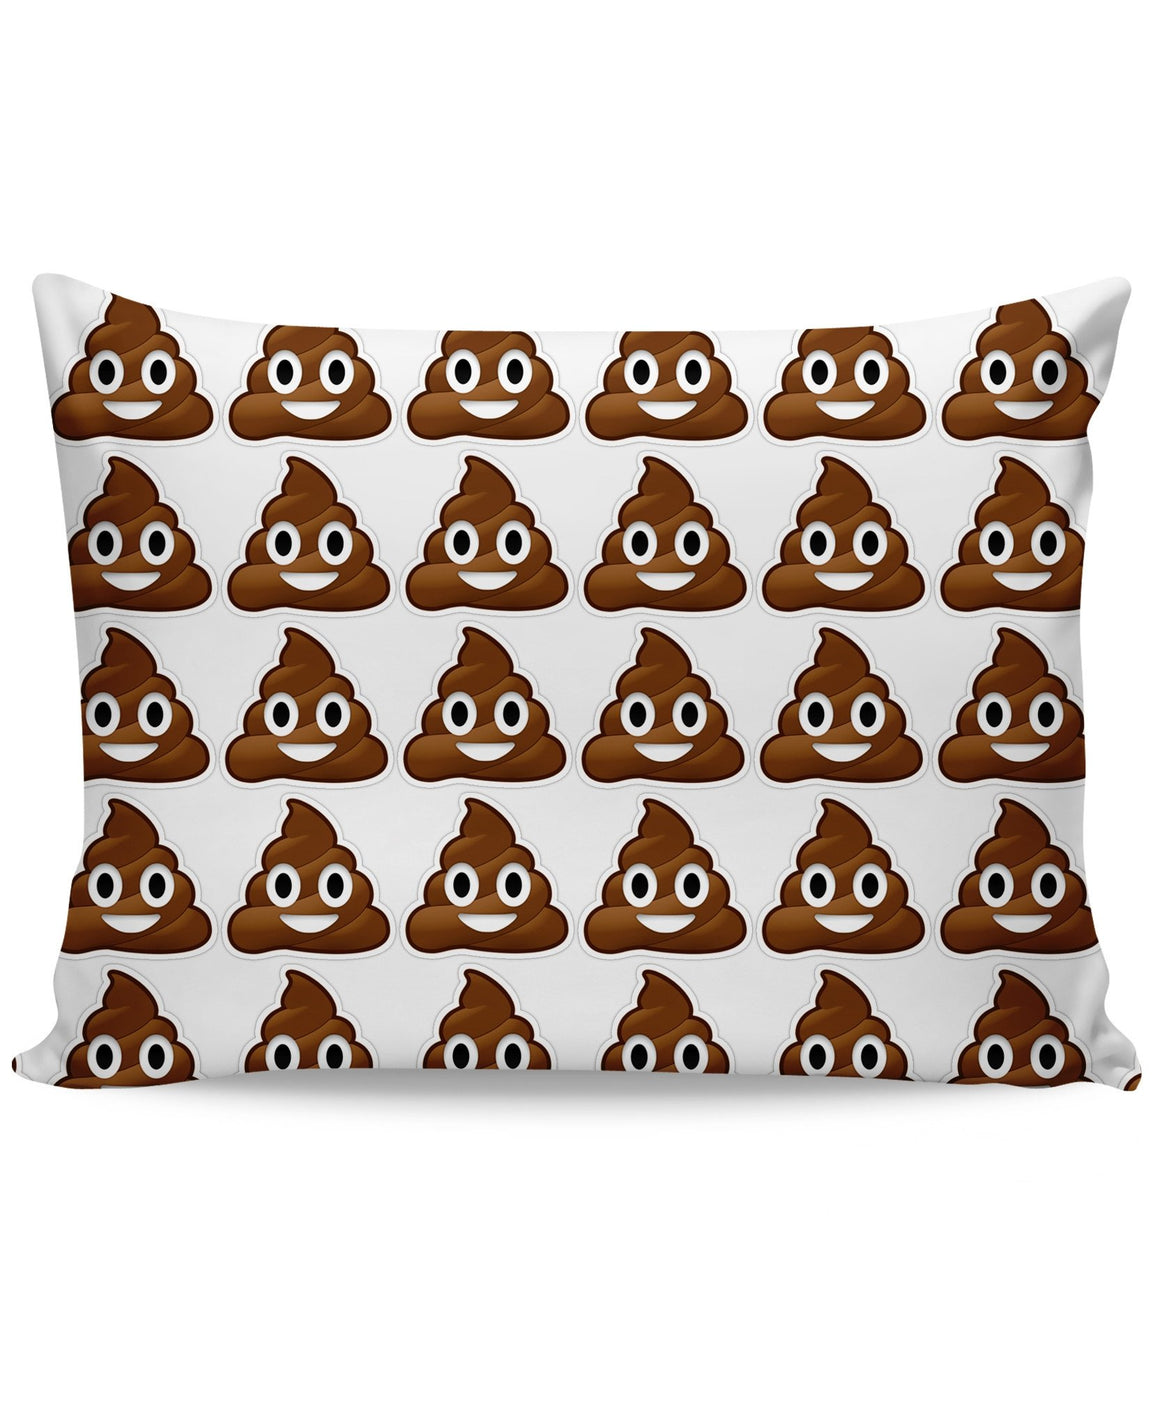 Poop Emoji Pillow Case - 5and15